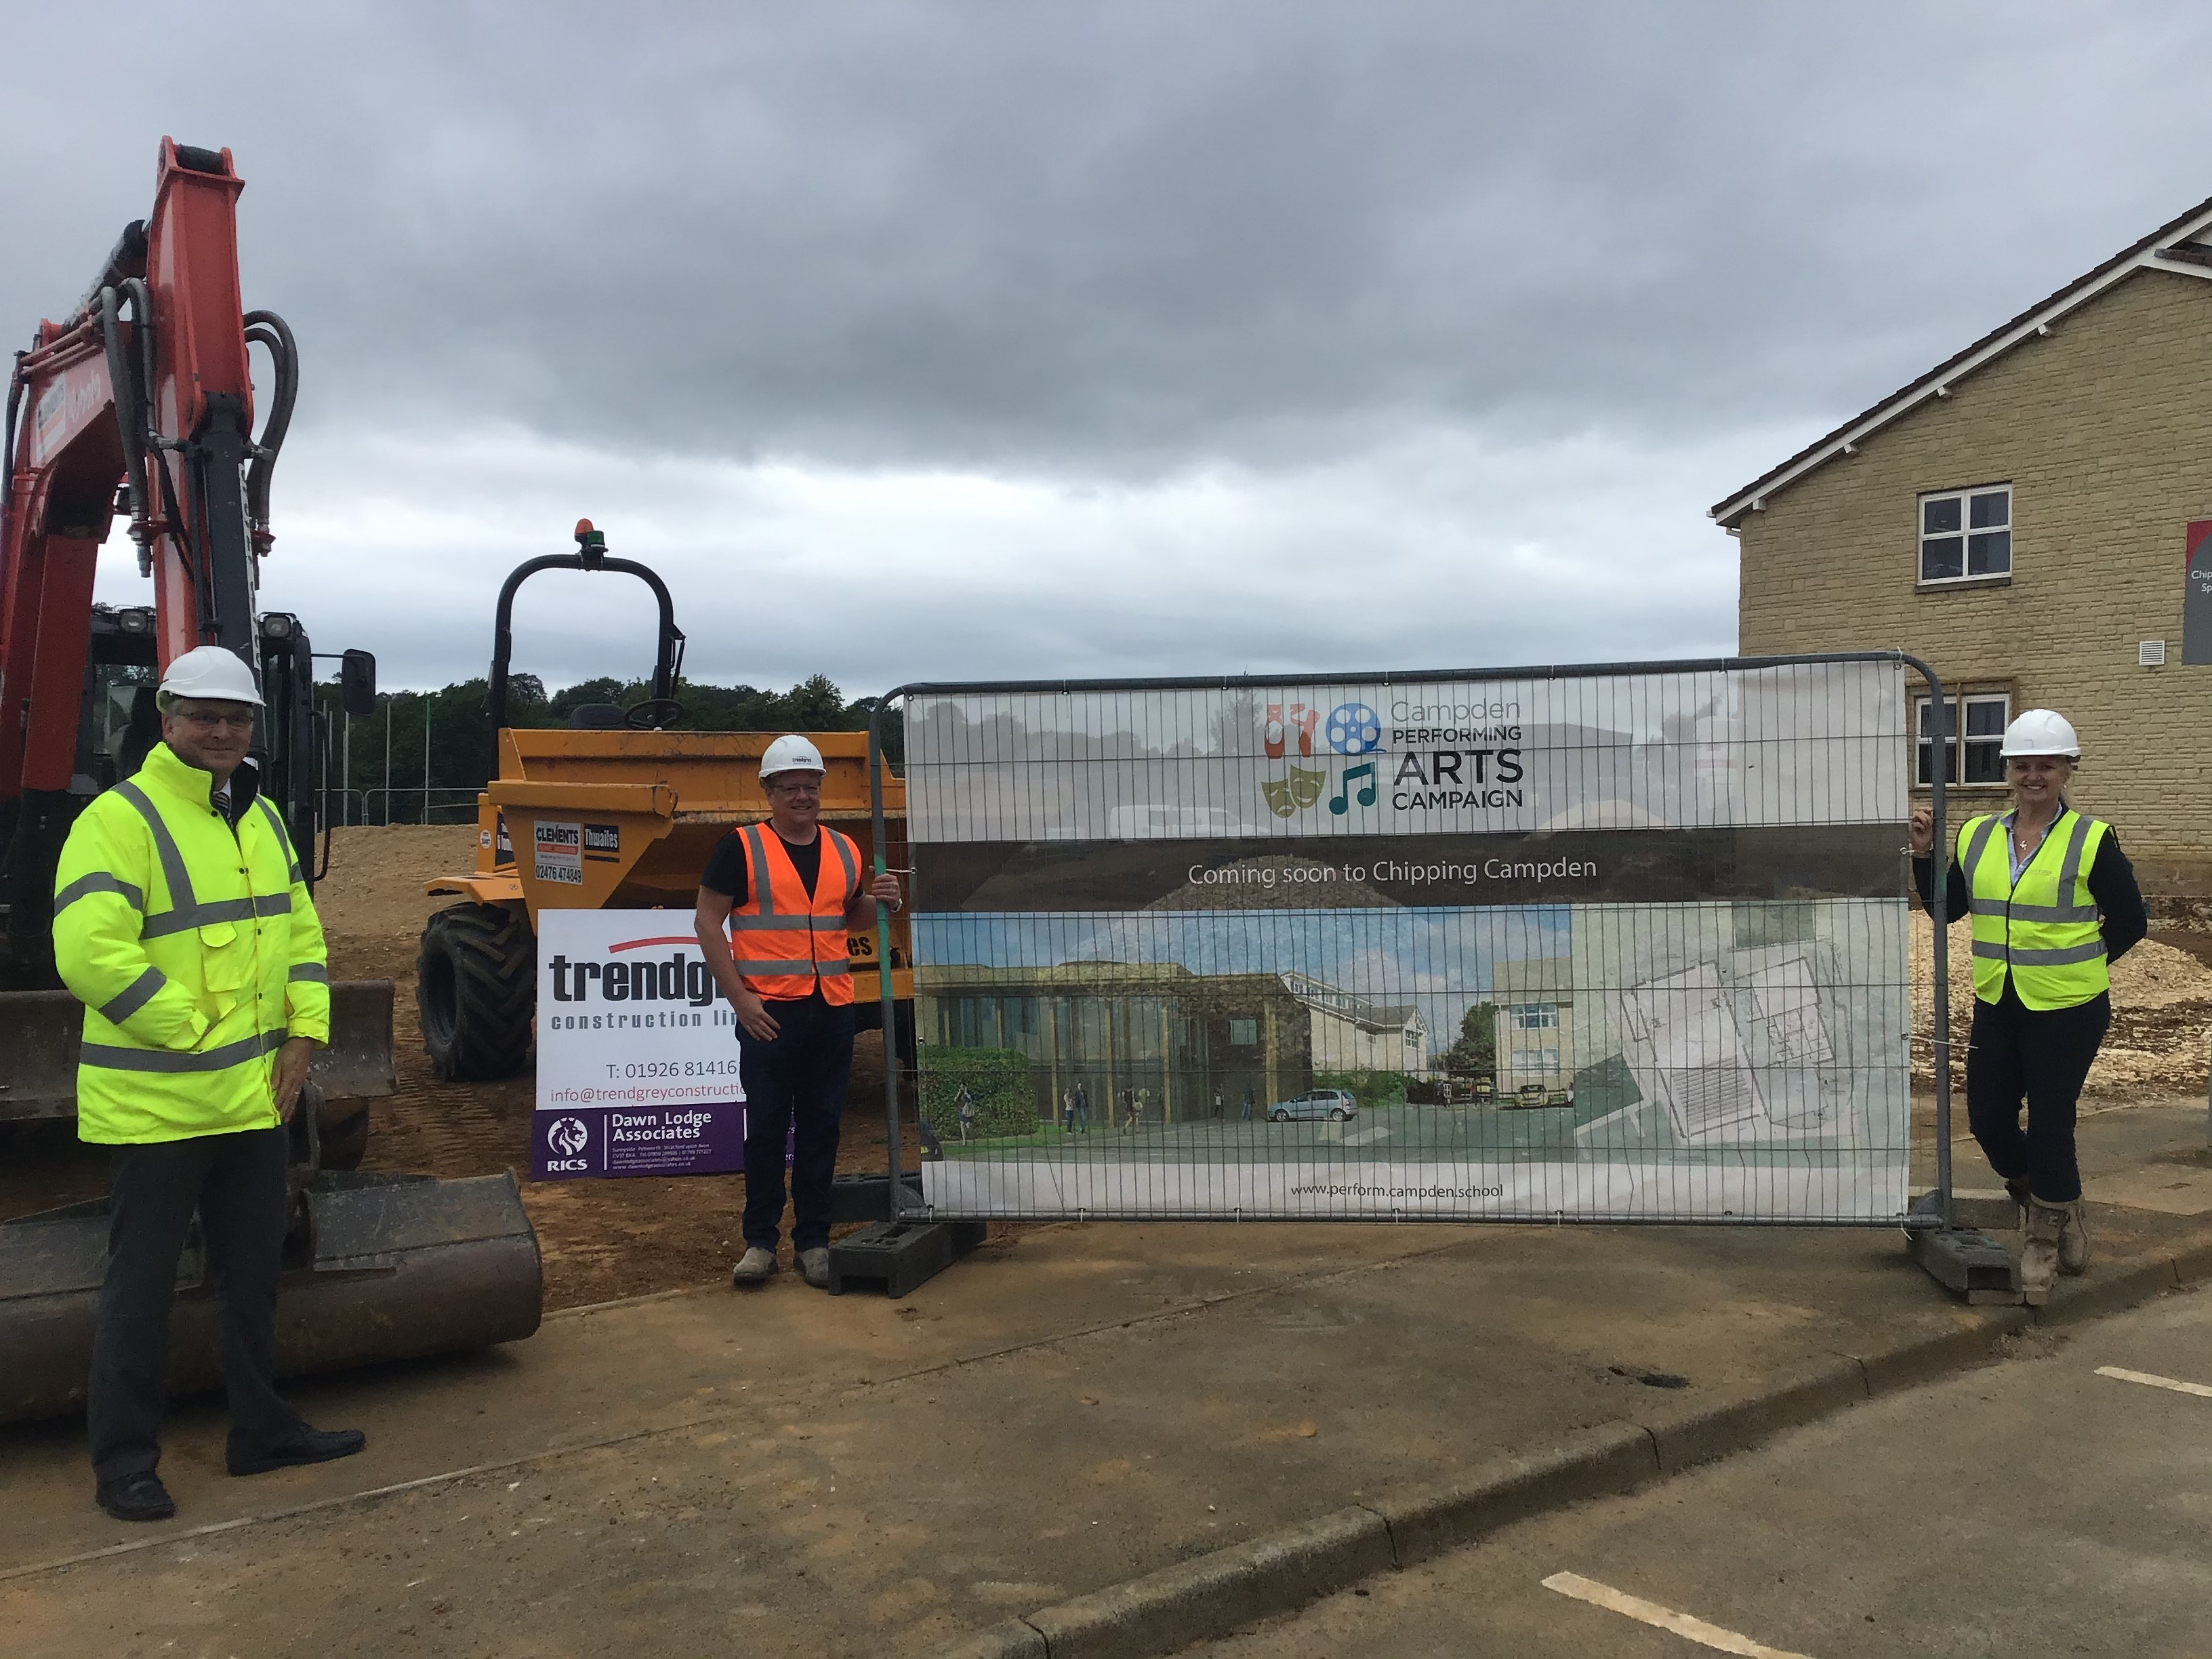 At the construction site for the Performing Arts Centre are, from left to right, John Sanderson, Principal Chipping Campden School, Nick Henderson from Trendgrey Construction and Dawn Lodge from Dawn Lodge Associates.